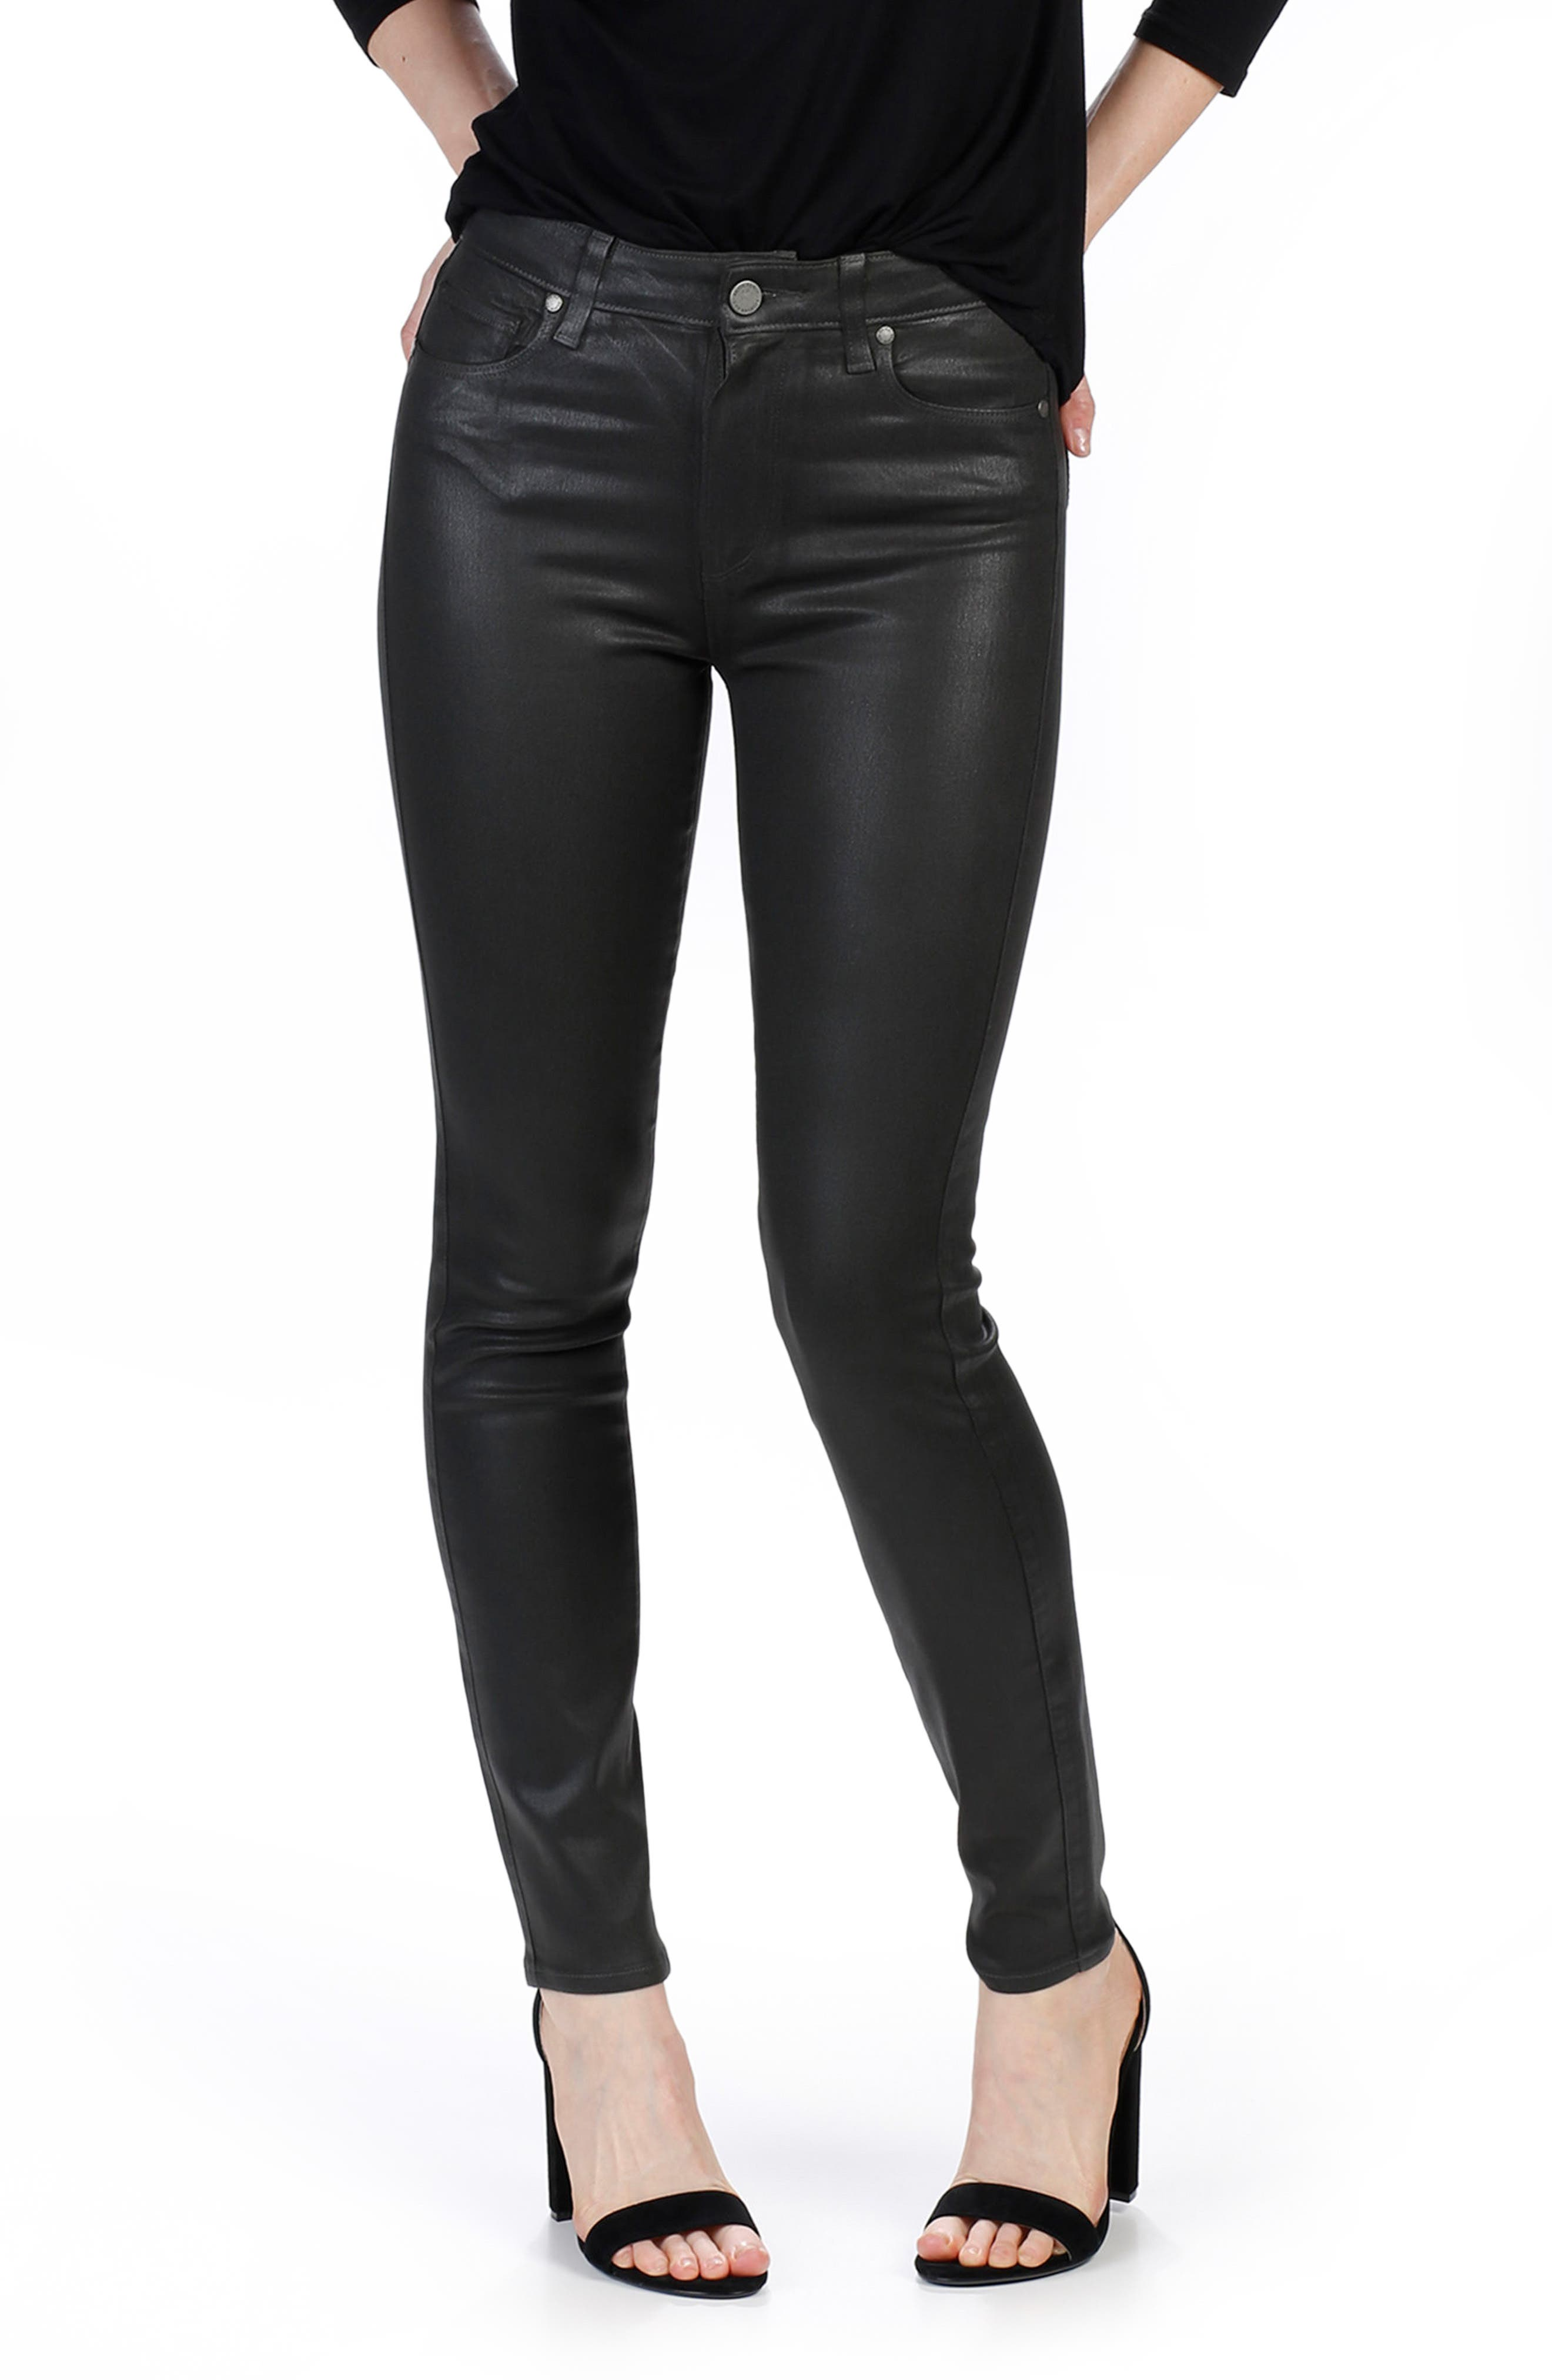 Transcend - Hoxton Coated High Waist Ankle Skinny Jeans,                             Main thumbnail 1, color,                             300